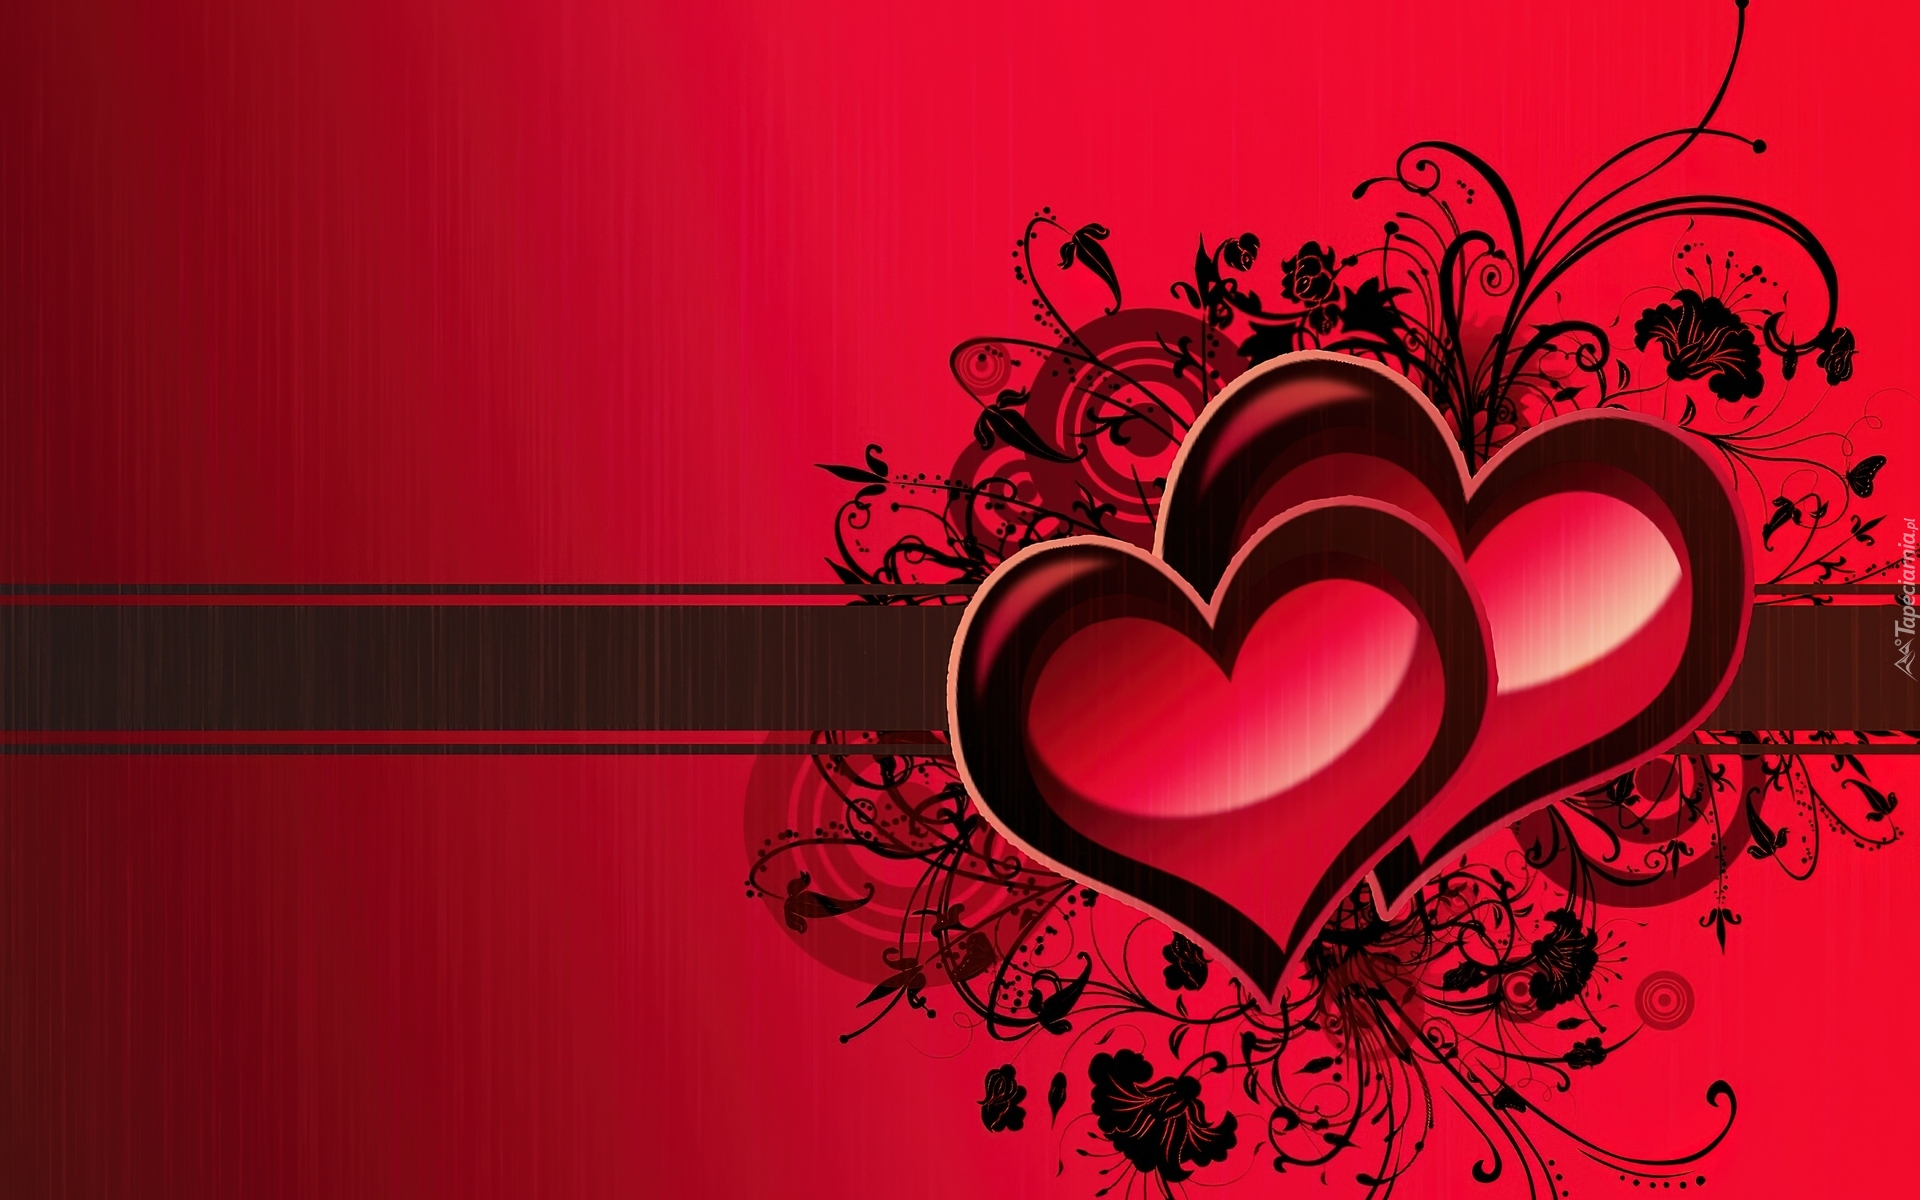 Wallpapers Fair Love Wallpaper Design For Desktop: Dwa, Serduszka, Na, Czerwonym, Tle, Grafika